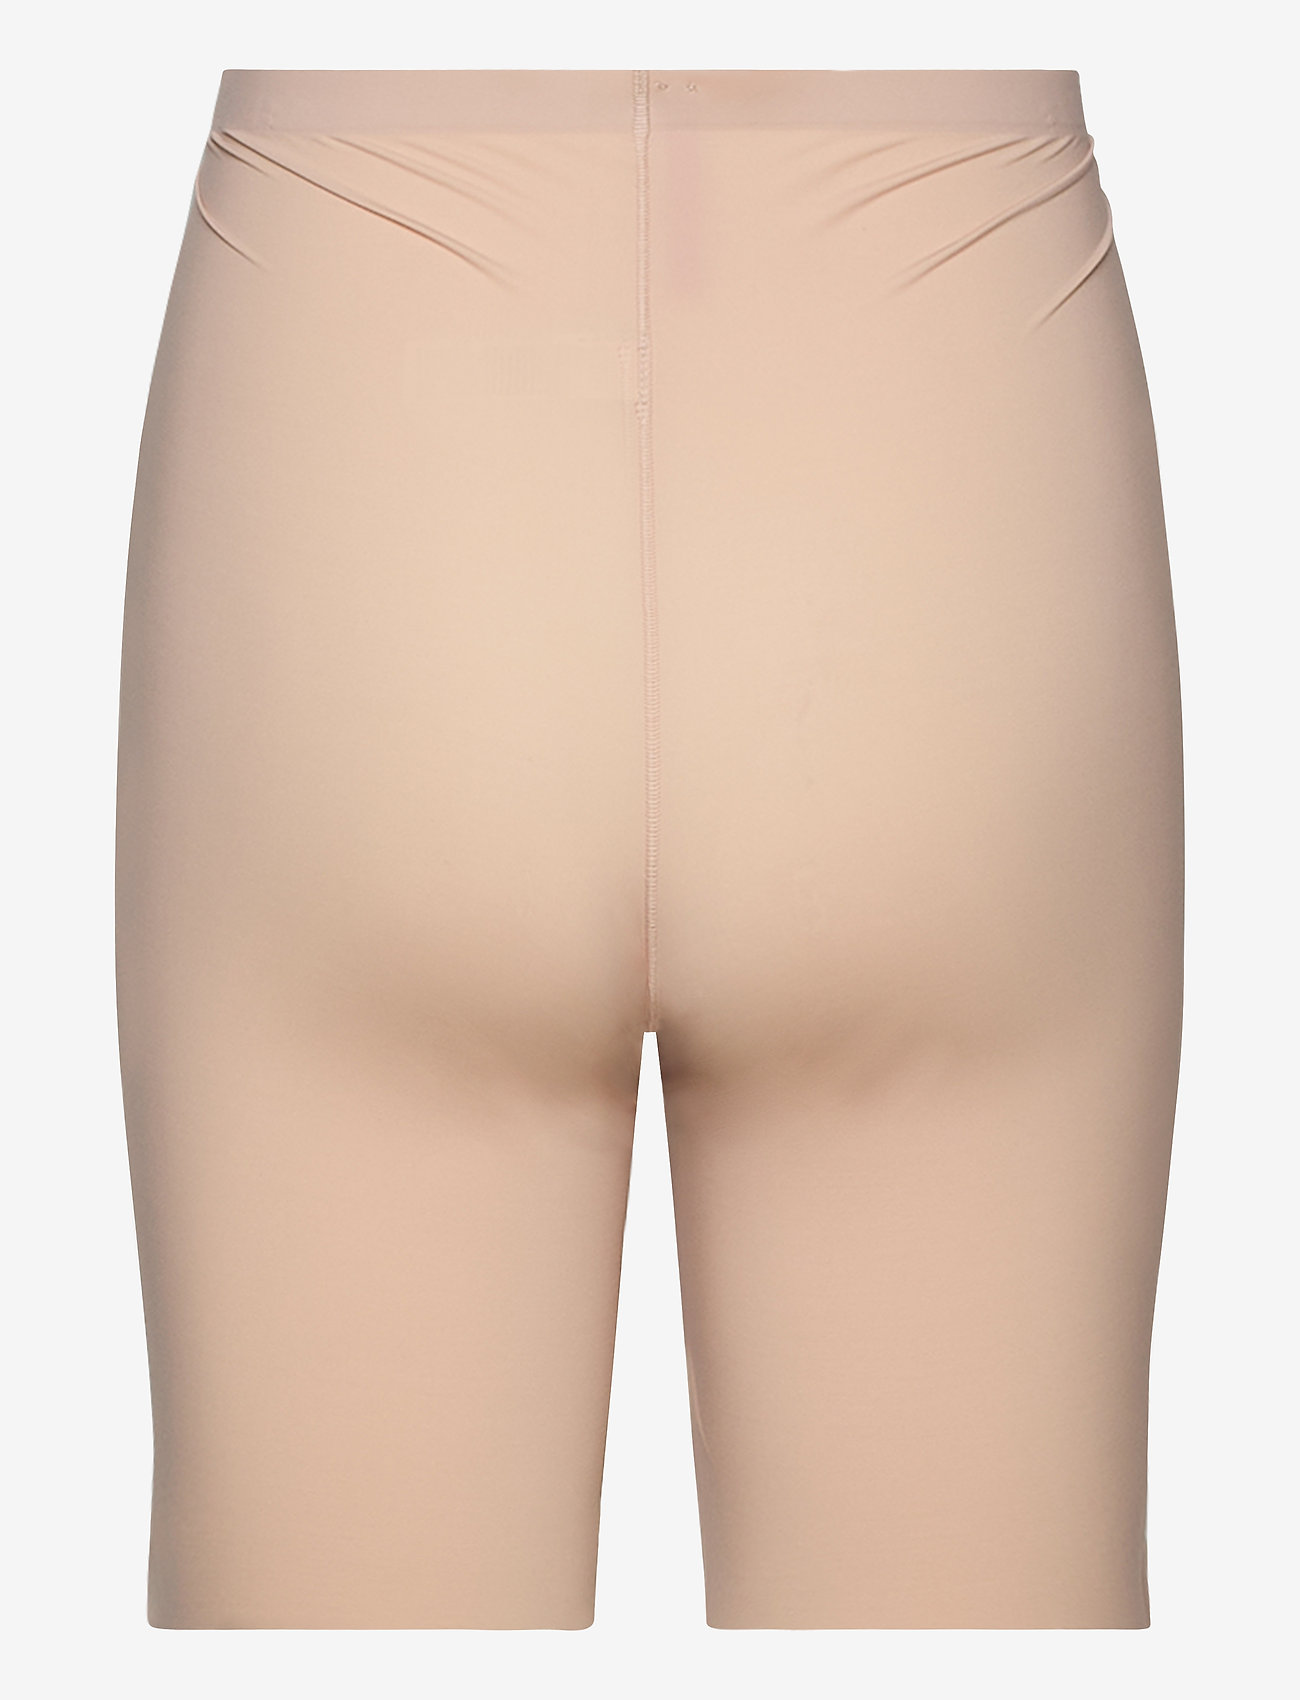 Spanx - SHORT - bottoms - soft nude - 1